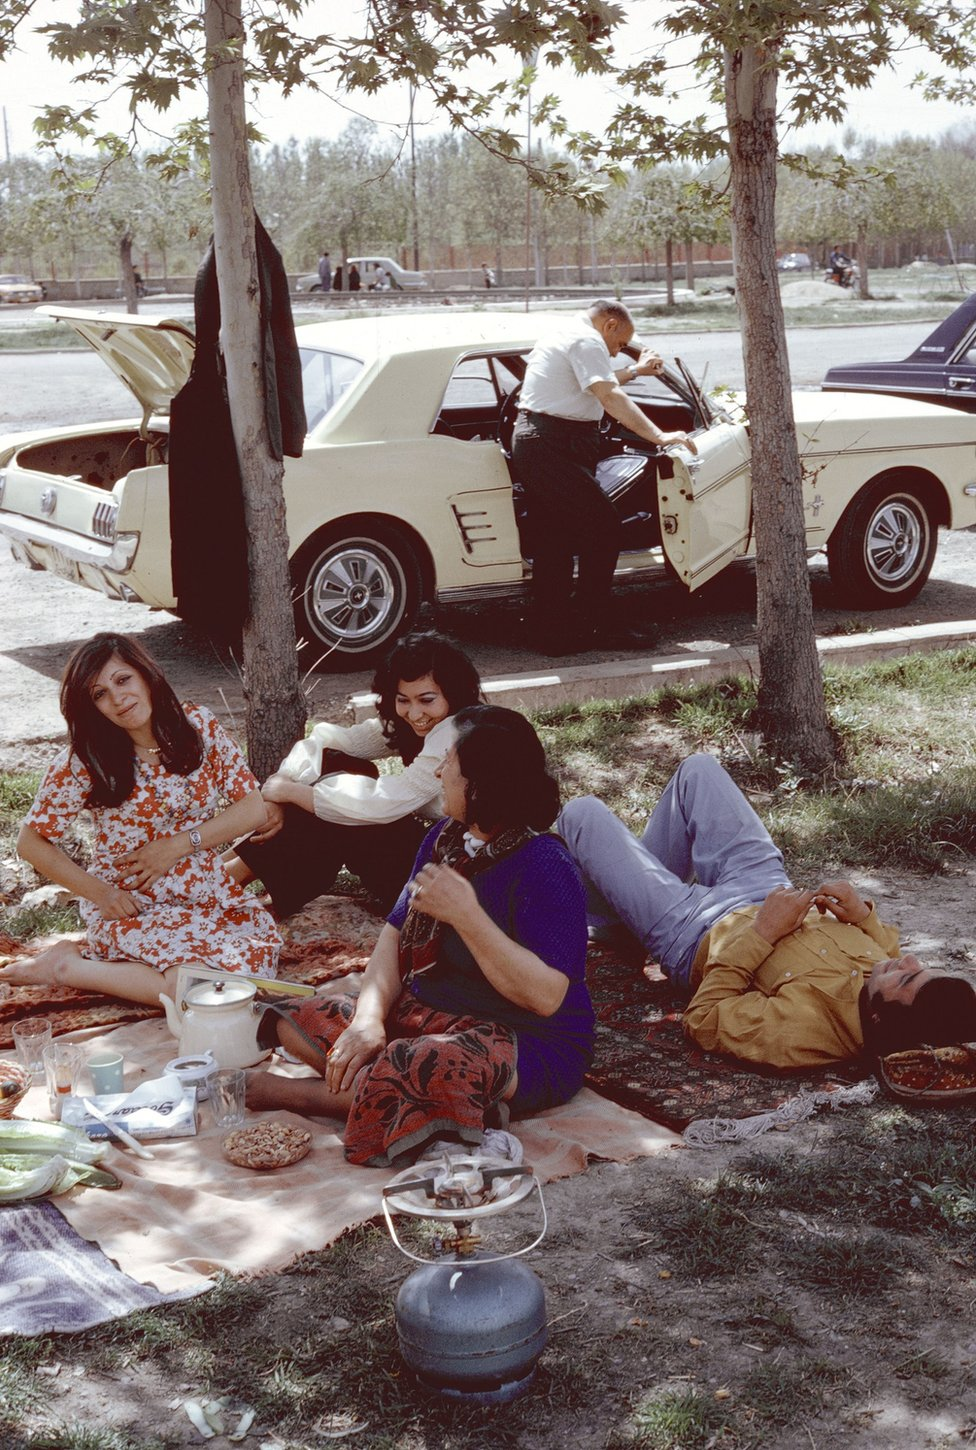 A group of men and women sit having a picnic in Tehran in 1976